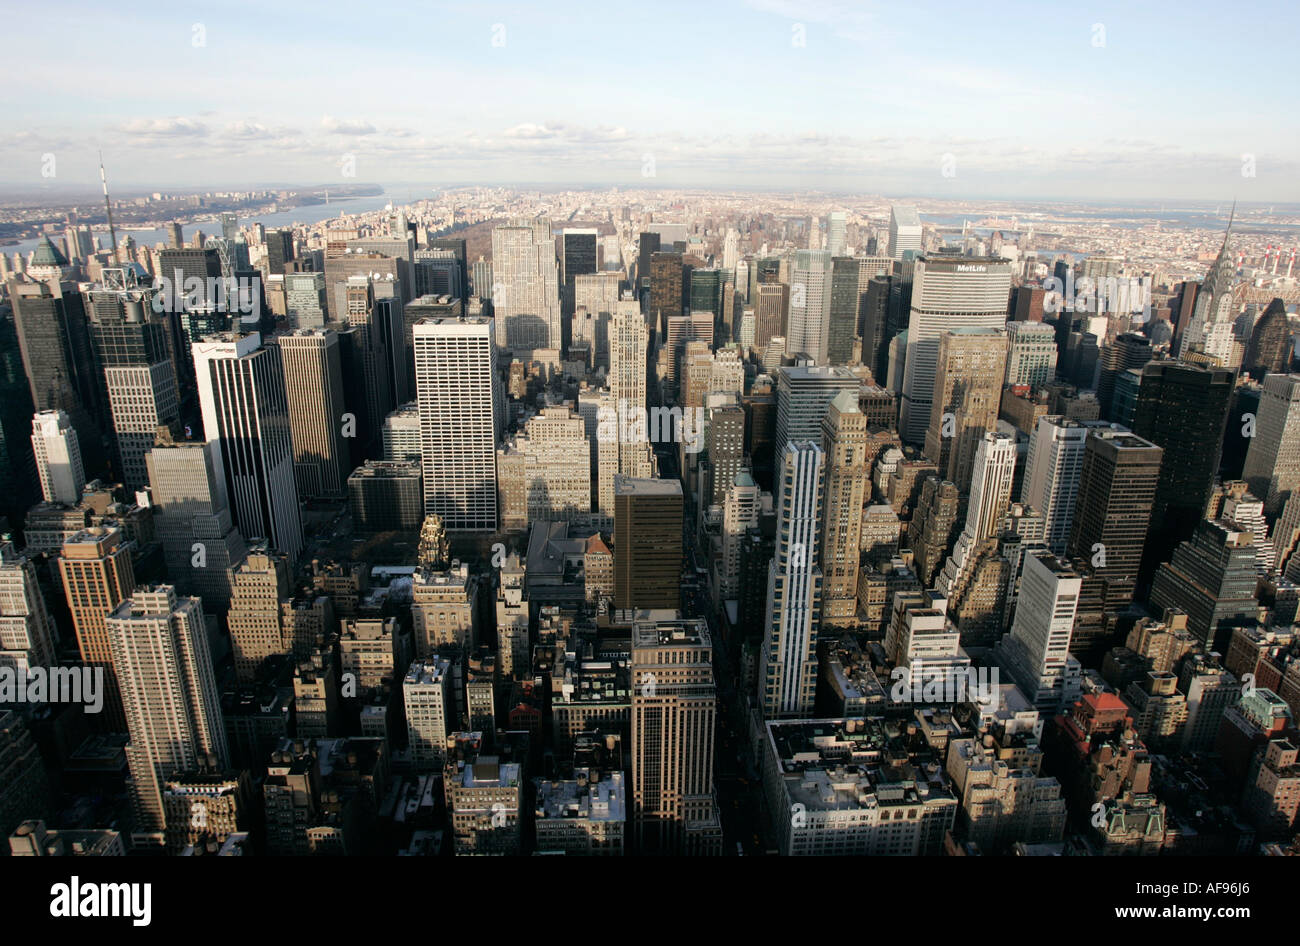 view north towards central park from observation deck 86th floor near the top of the empire state building - Stock Image